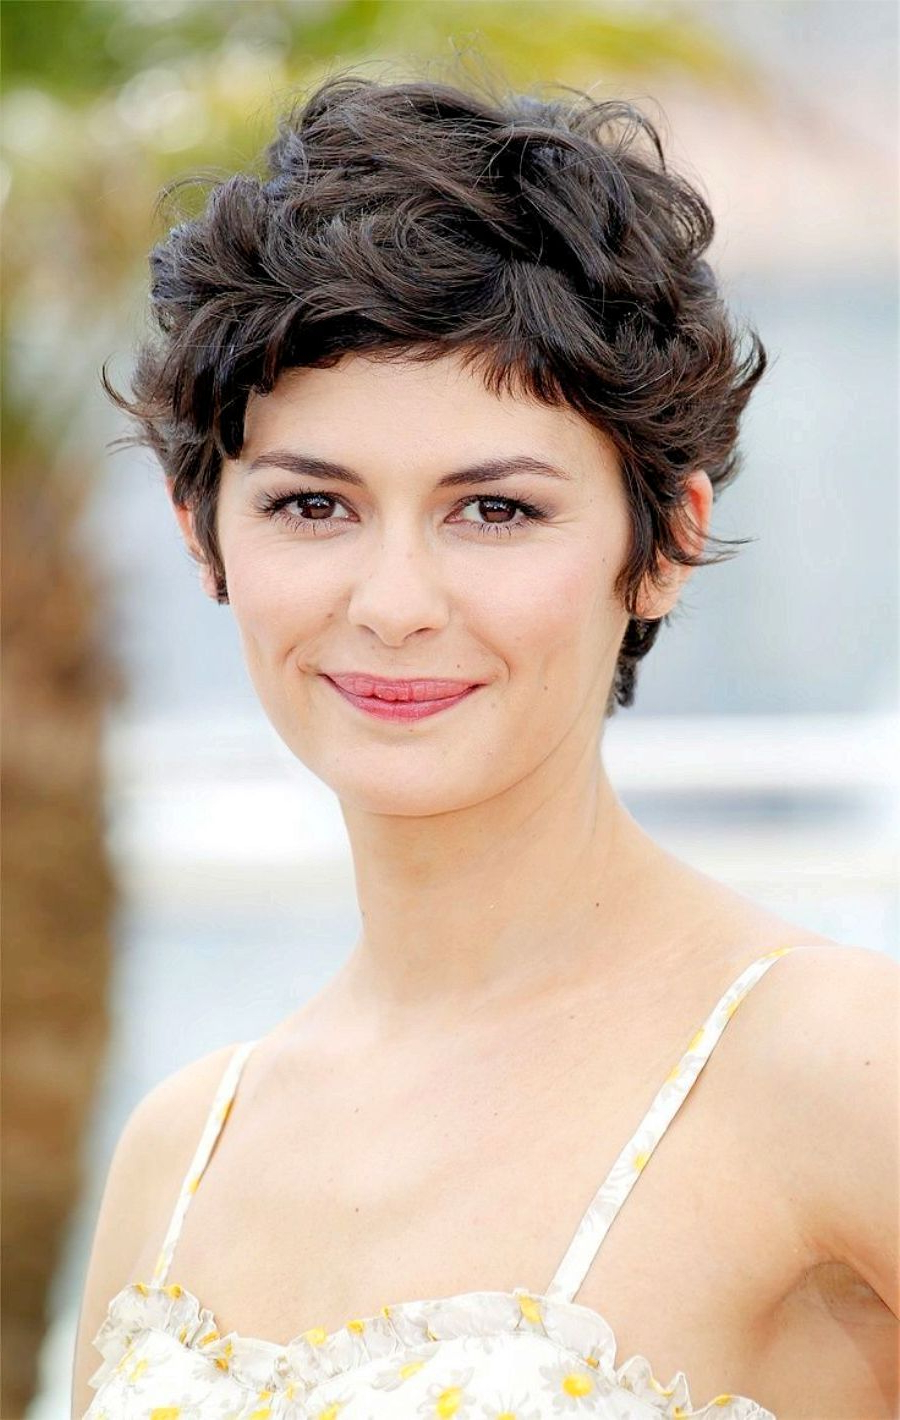 Curly Pixie Haircut | Hairstyles | Pinterest | Hair, Curly Hair Inside Long Messy Curly Pixie Haircuts (View 4 of 20)